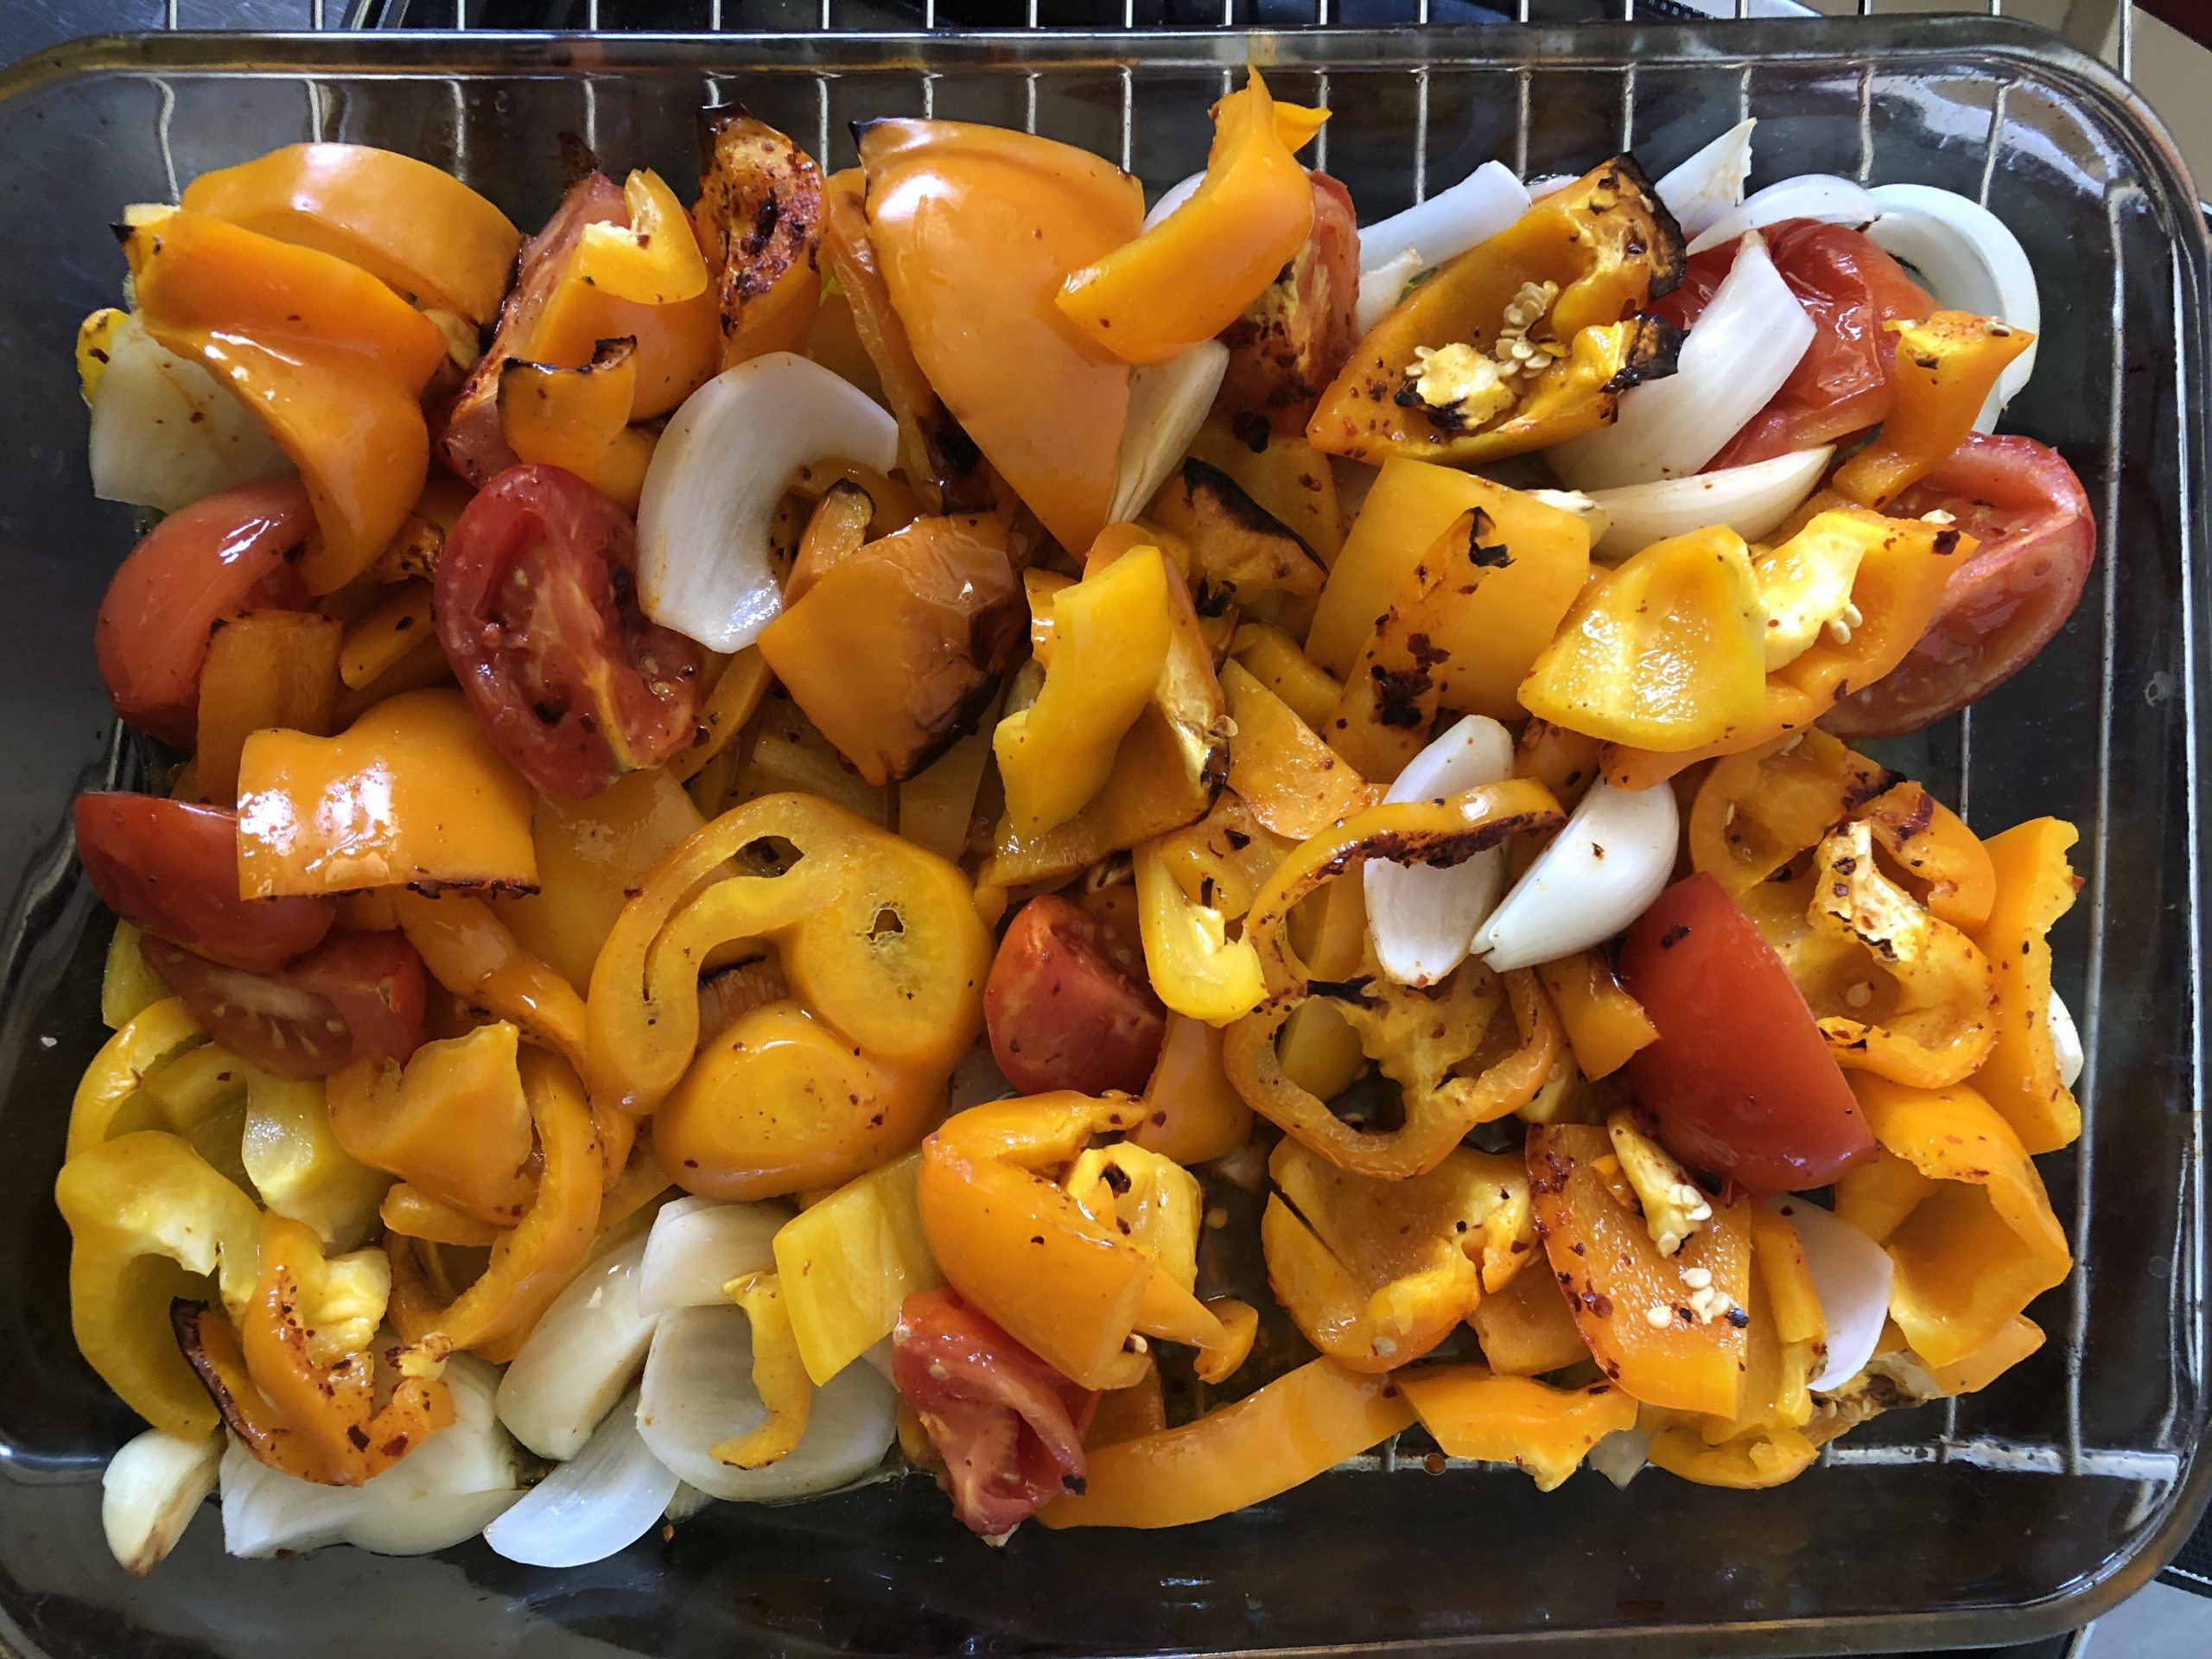 roasted peppers, tomatoes, onions, chili, garlic and olive oil